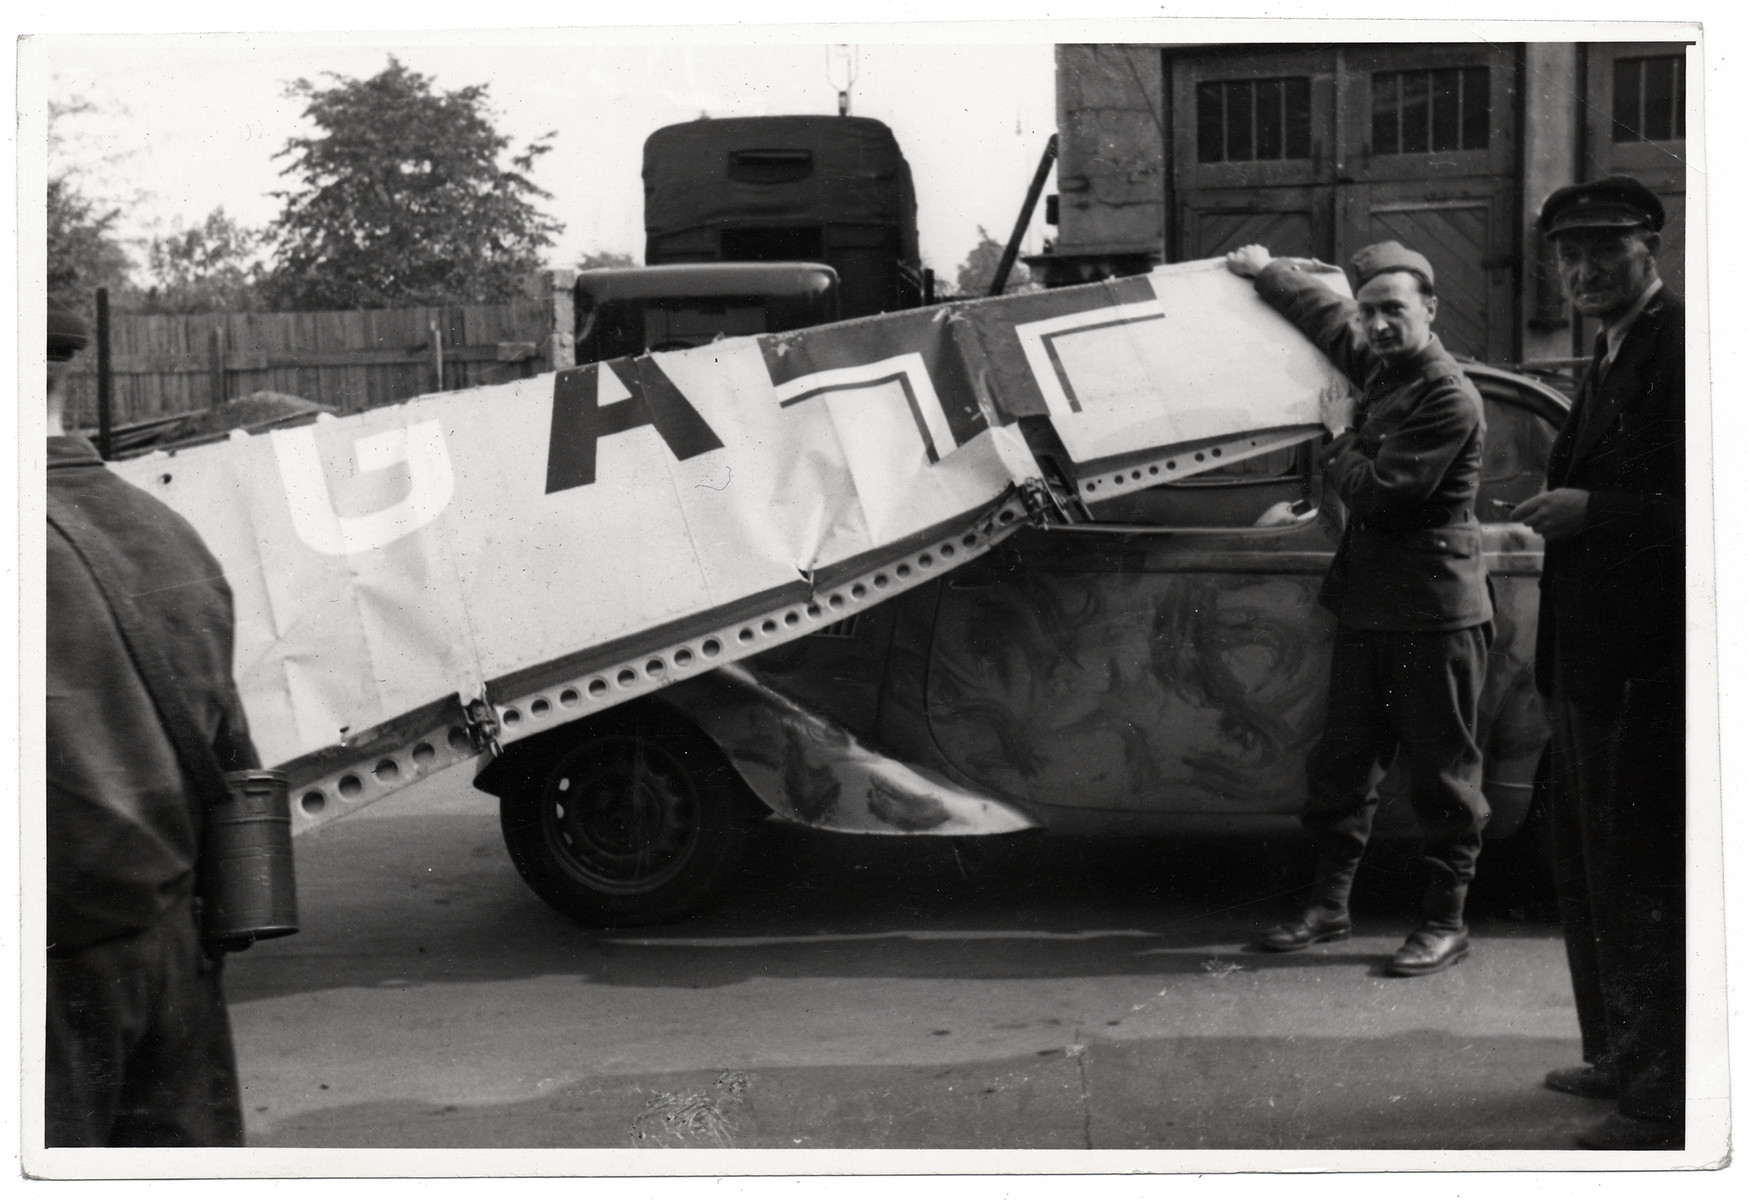 A Polish soldier poses with a tank in besieged Warsaw.